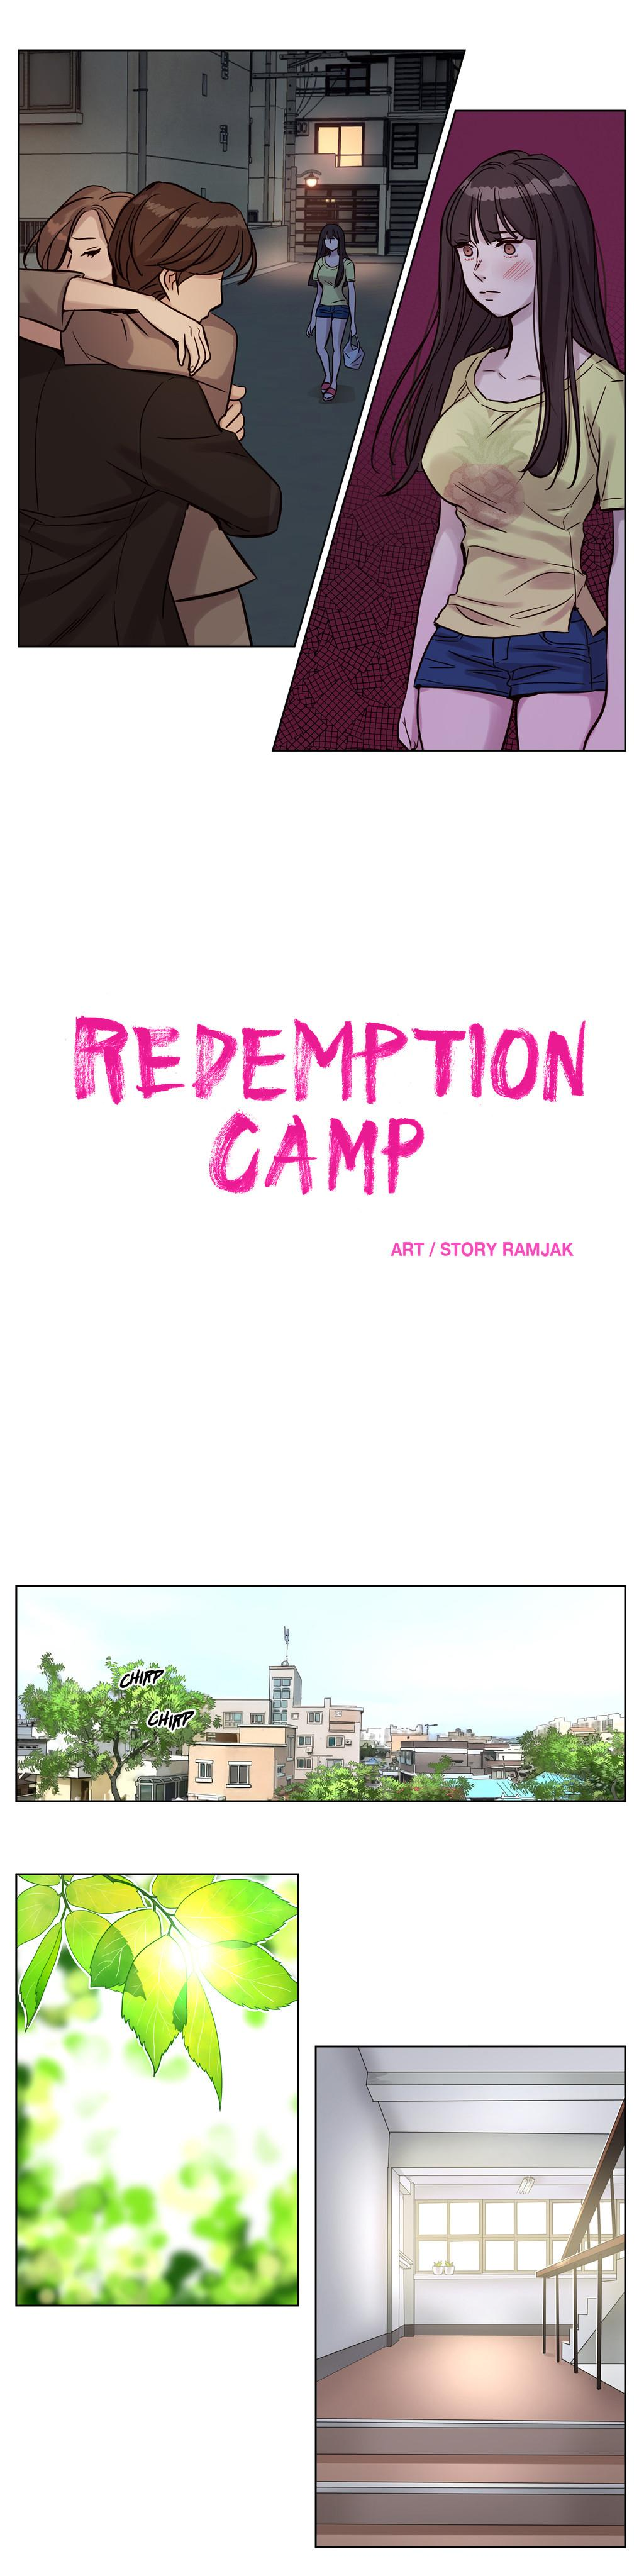 Atonement Camp Ch.0-36 181